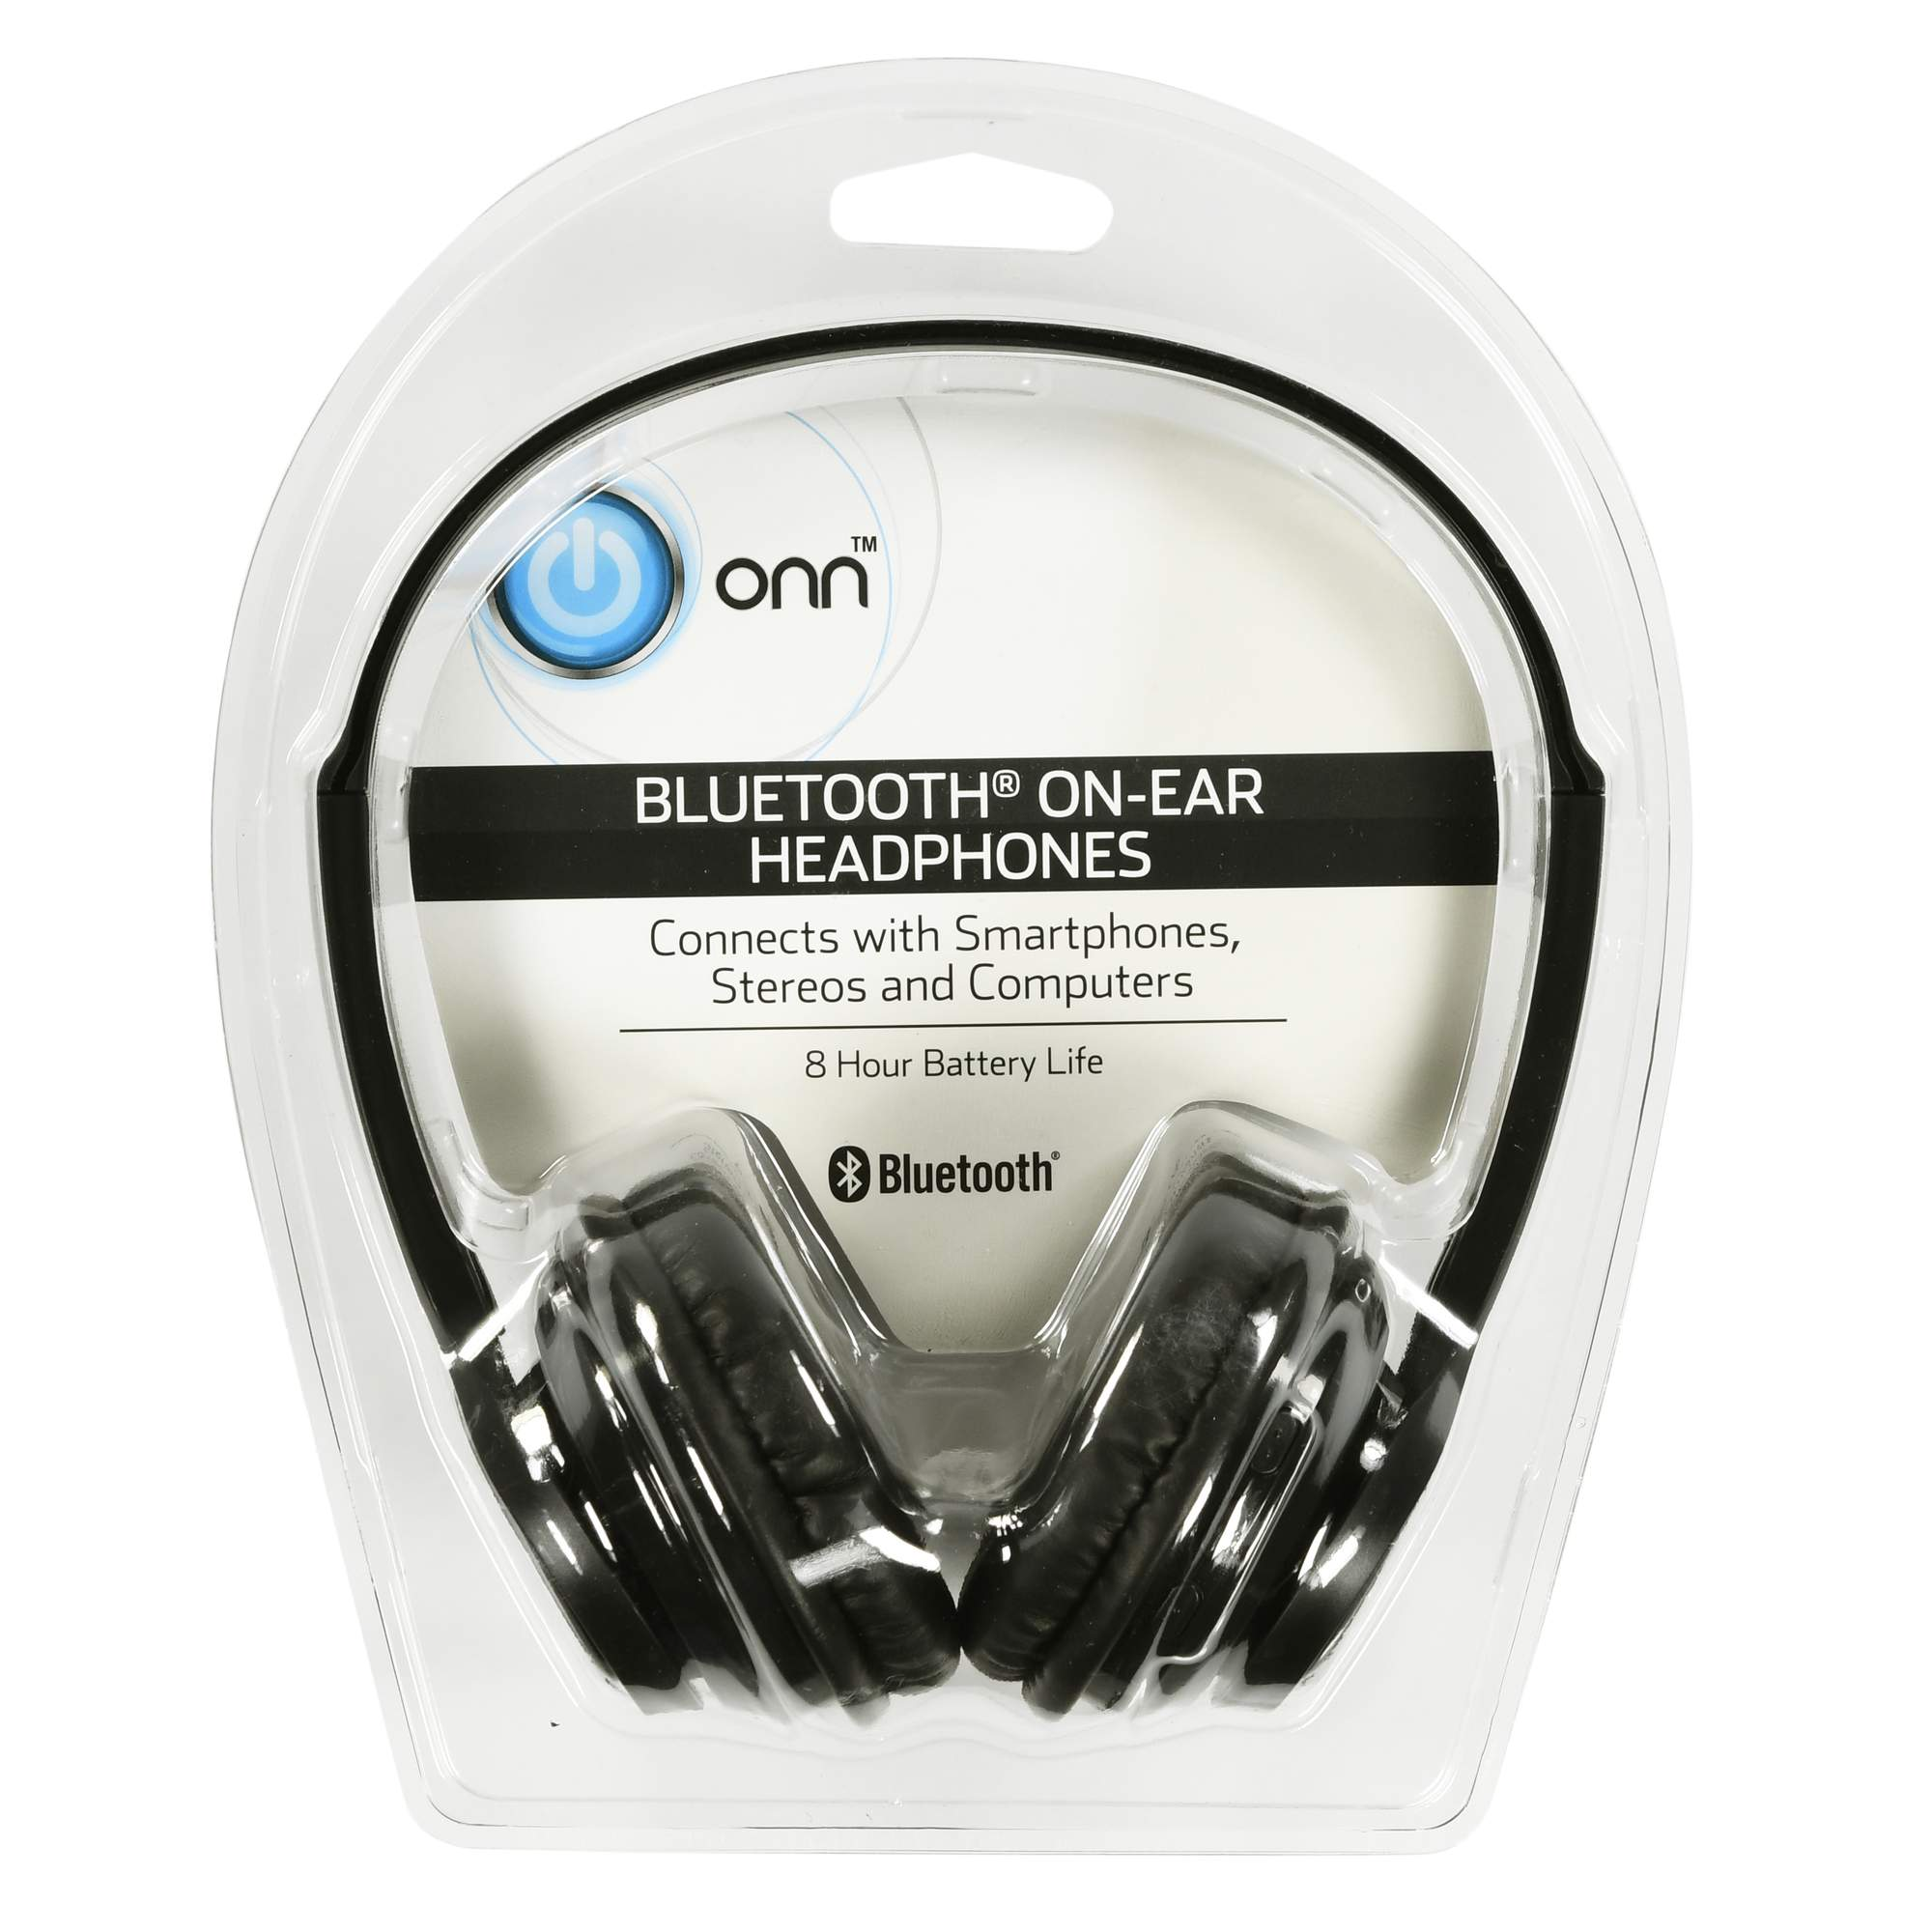 Onn by Walmart Bluetooth On-ear Headphones, Black